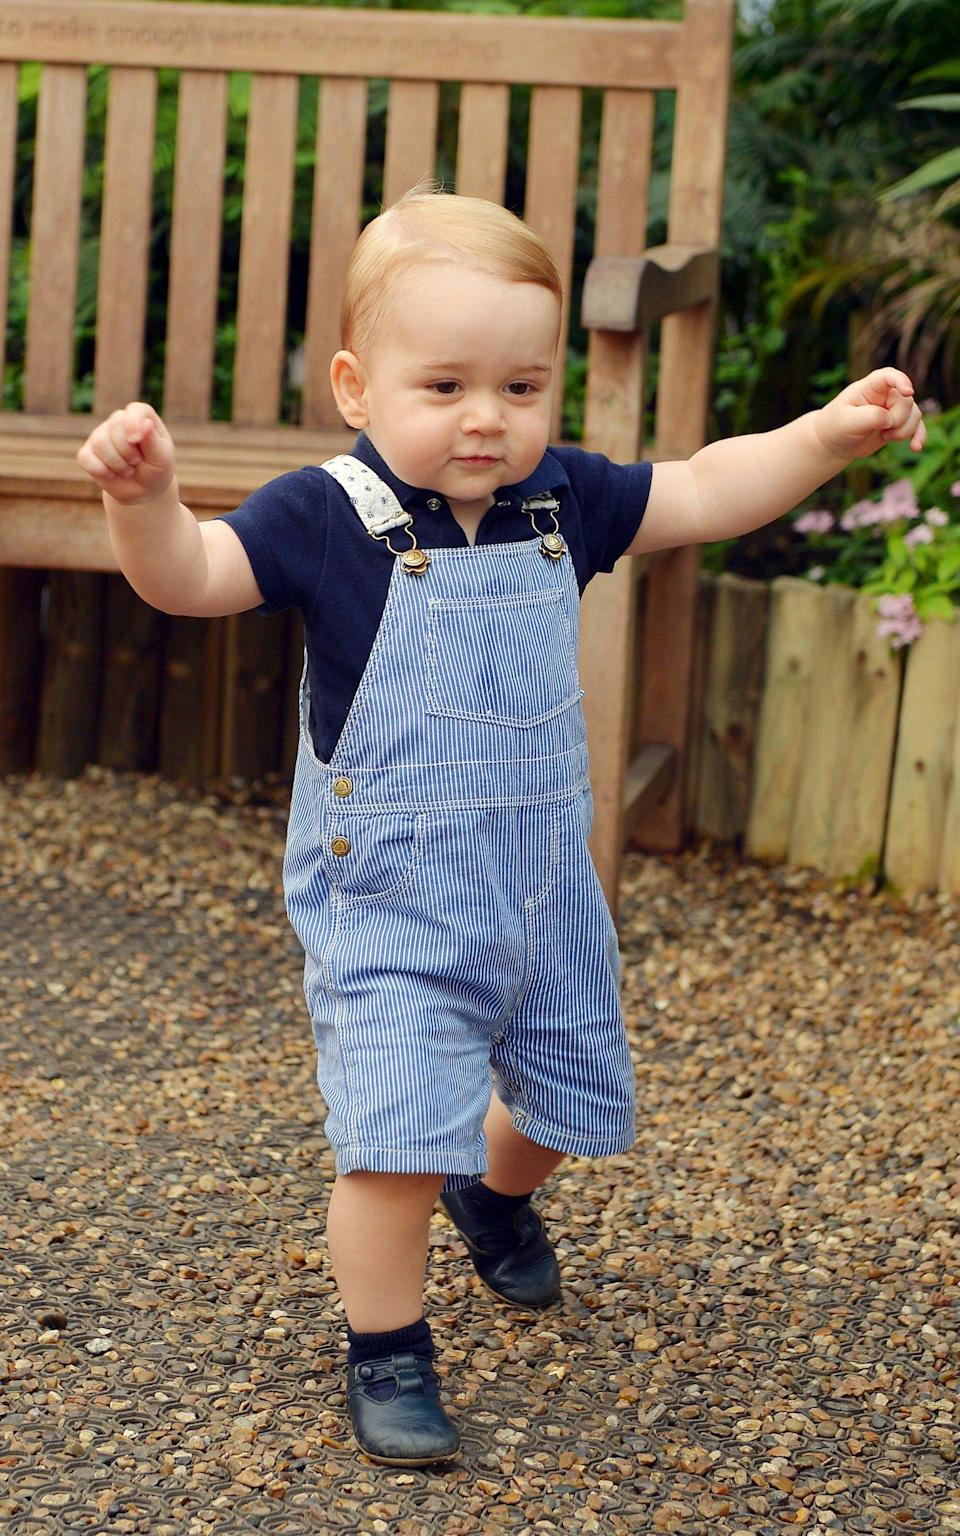 The photo taken to mark Prince George's first birthday - AFP